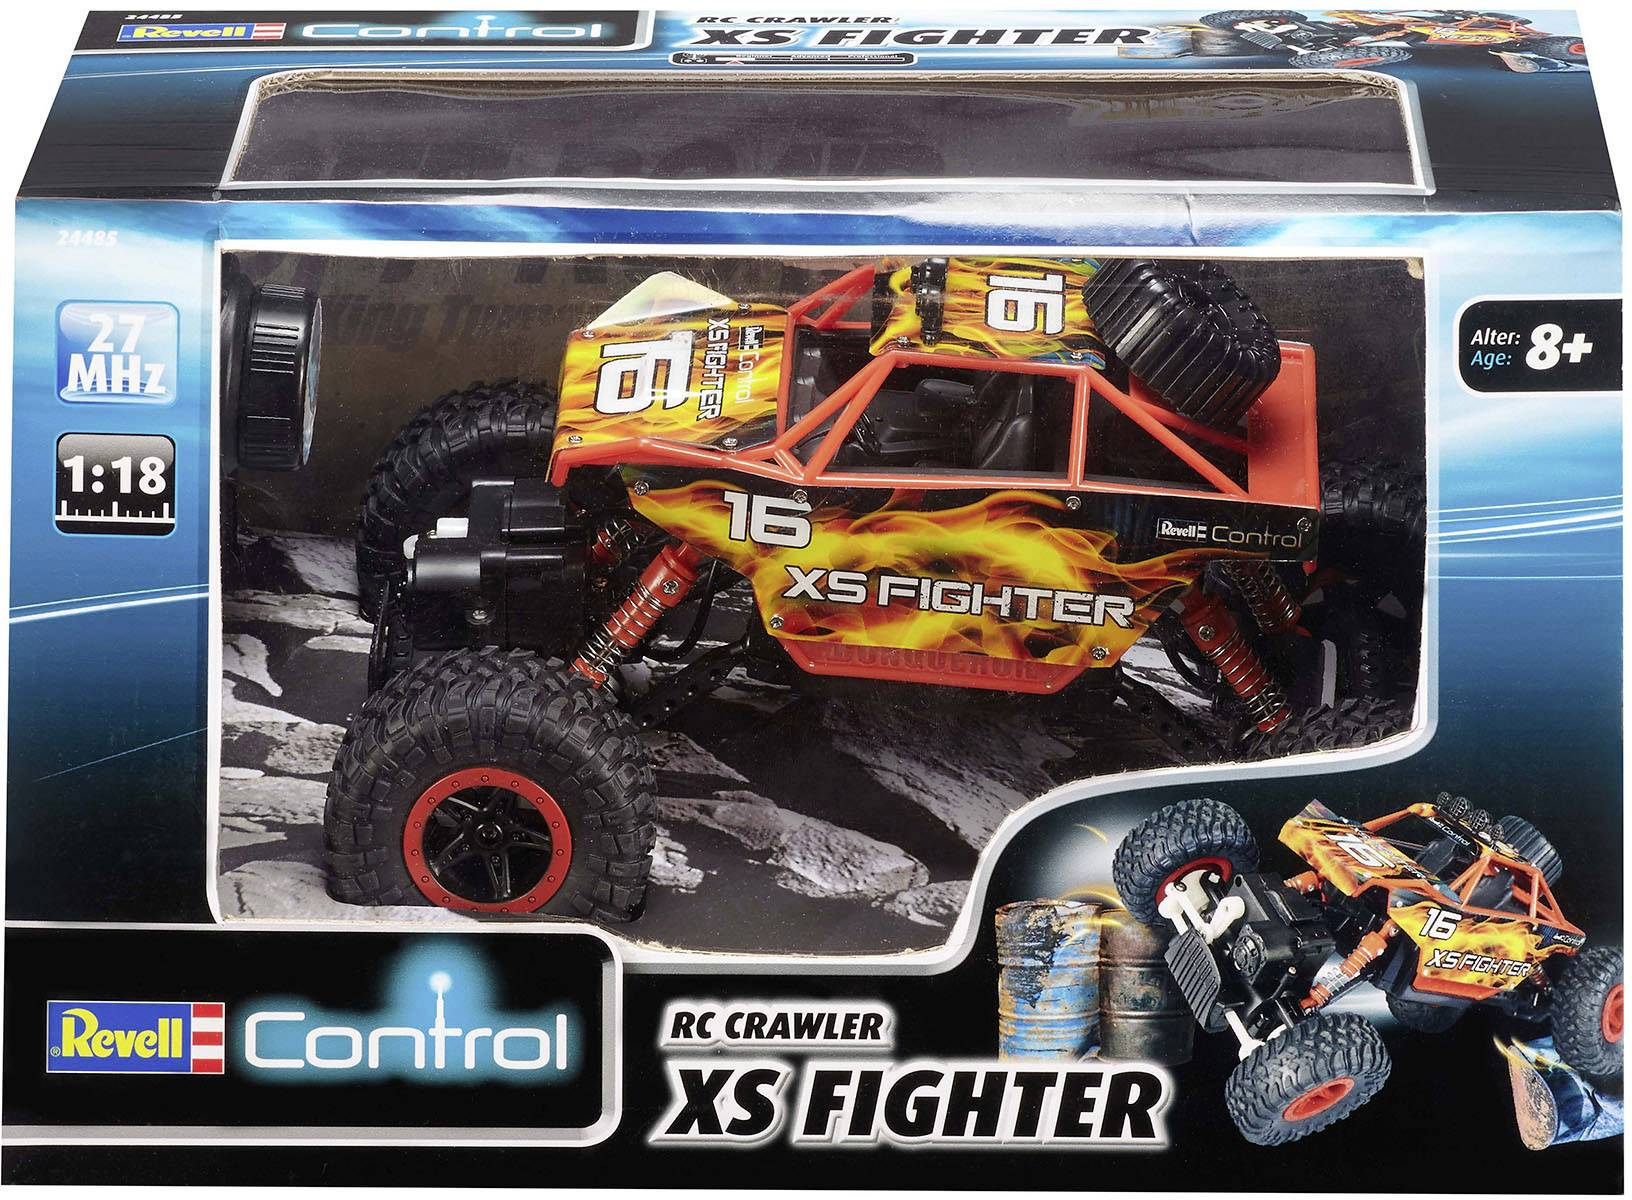 Revell Control 24485 Crawler XS Fighter |